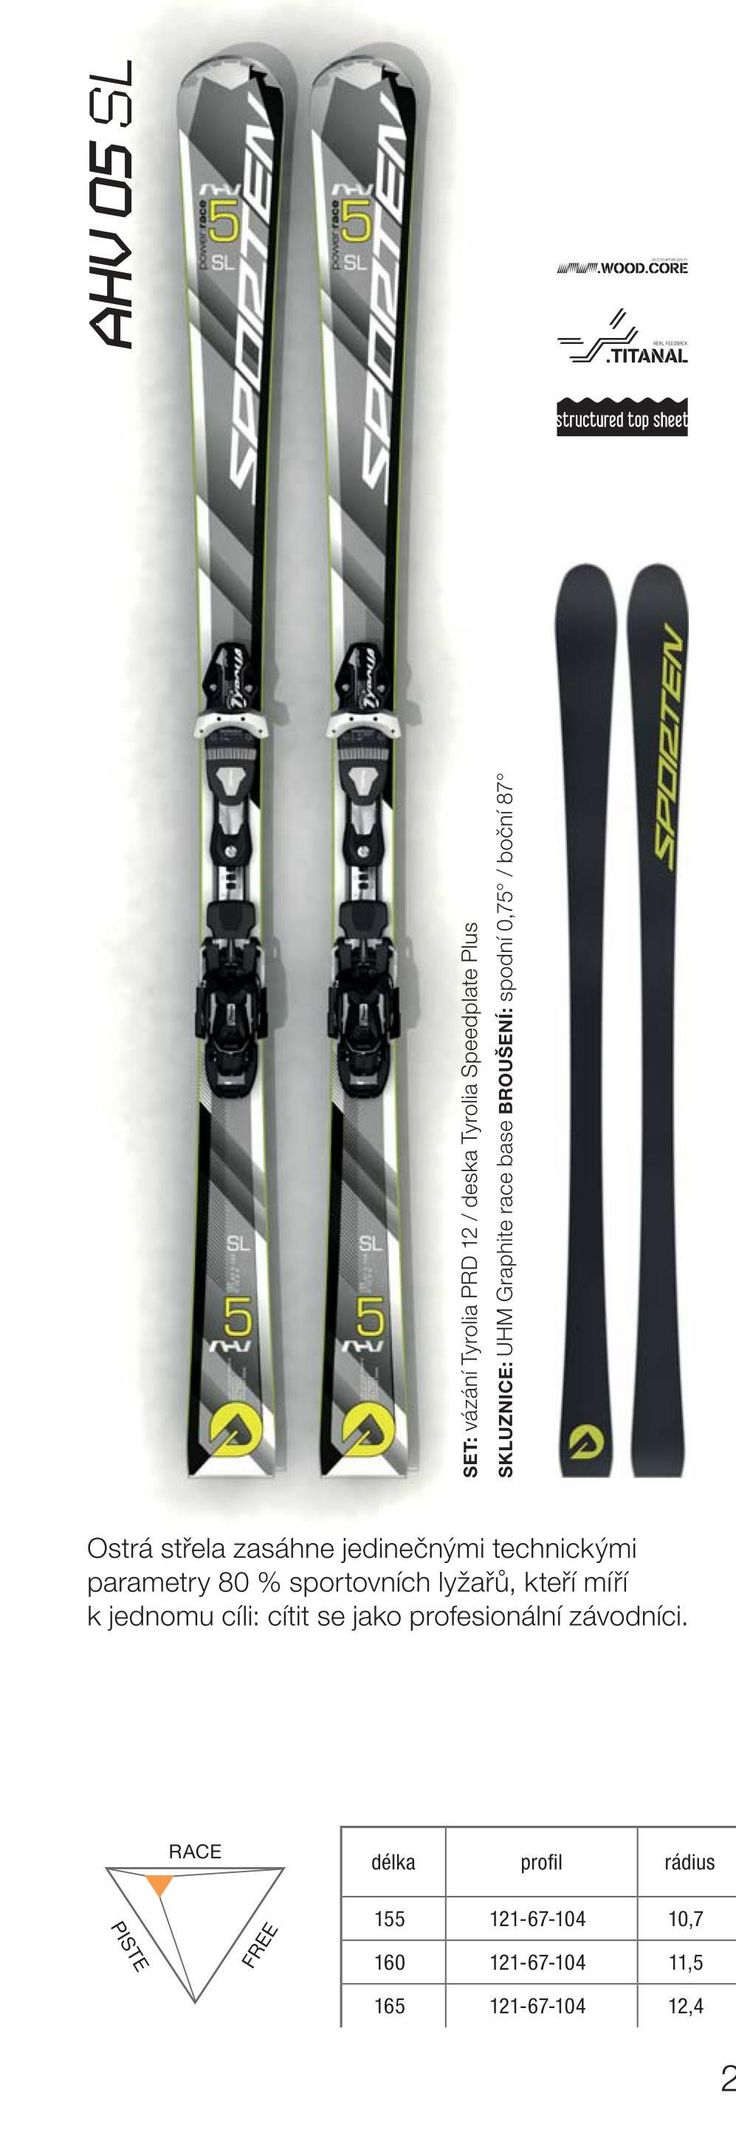 AHV 05 skis 2015/16 collection